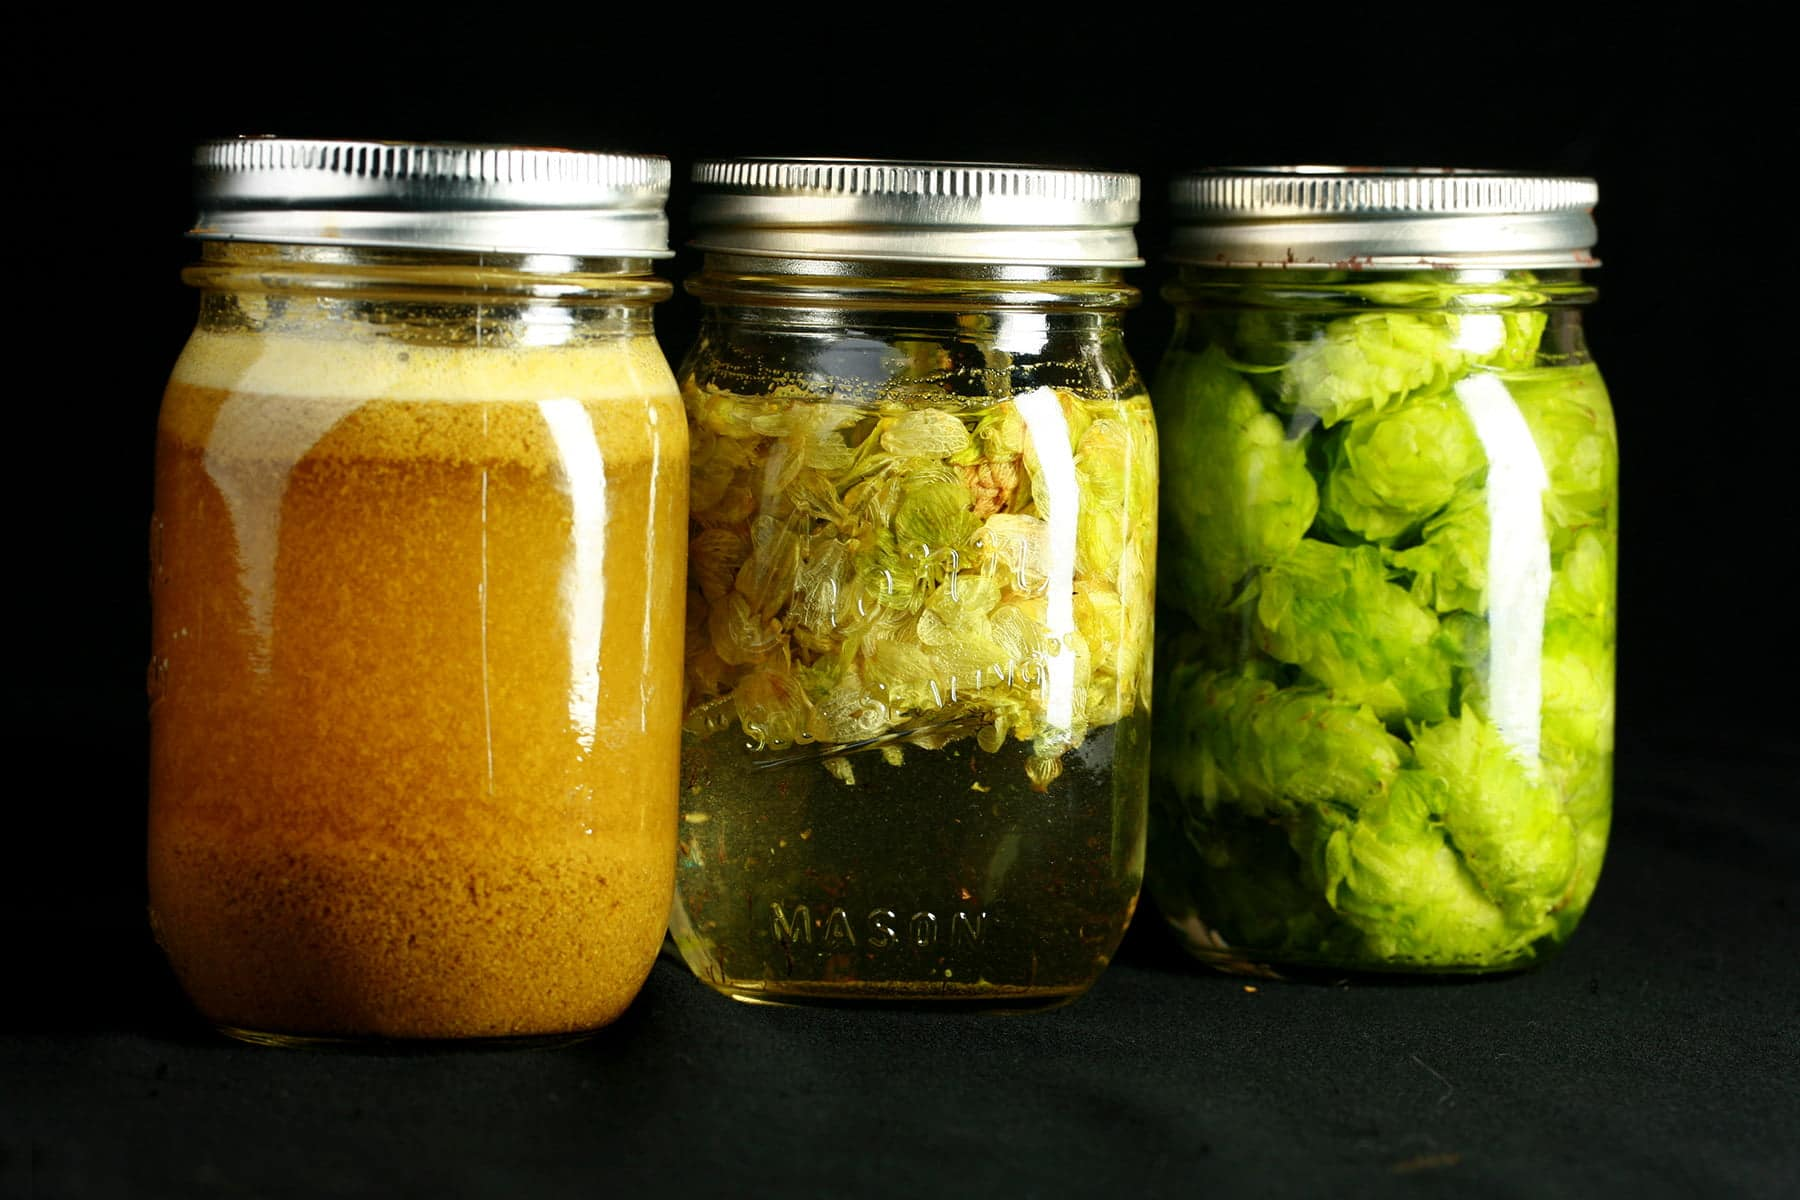 3 mason jars holding extracts being made from the 3 different forms of hop. The first with pellets is orange and cloudy. The middle uses dried leaves, which are floating at the top of the clear, pale green liquid. The final jar holds bright green fresh hop flowers suspended in clear liquid.